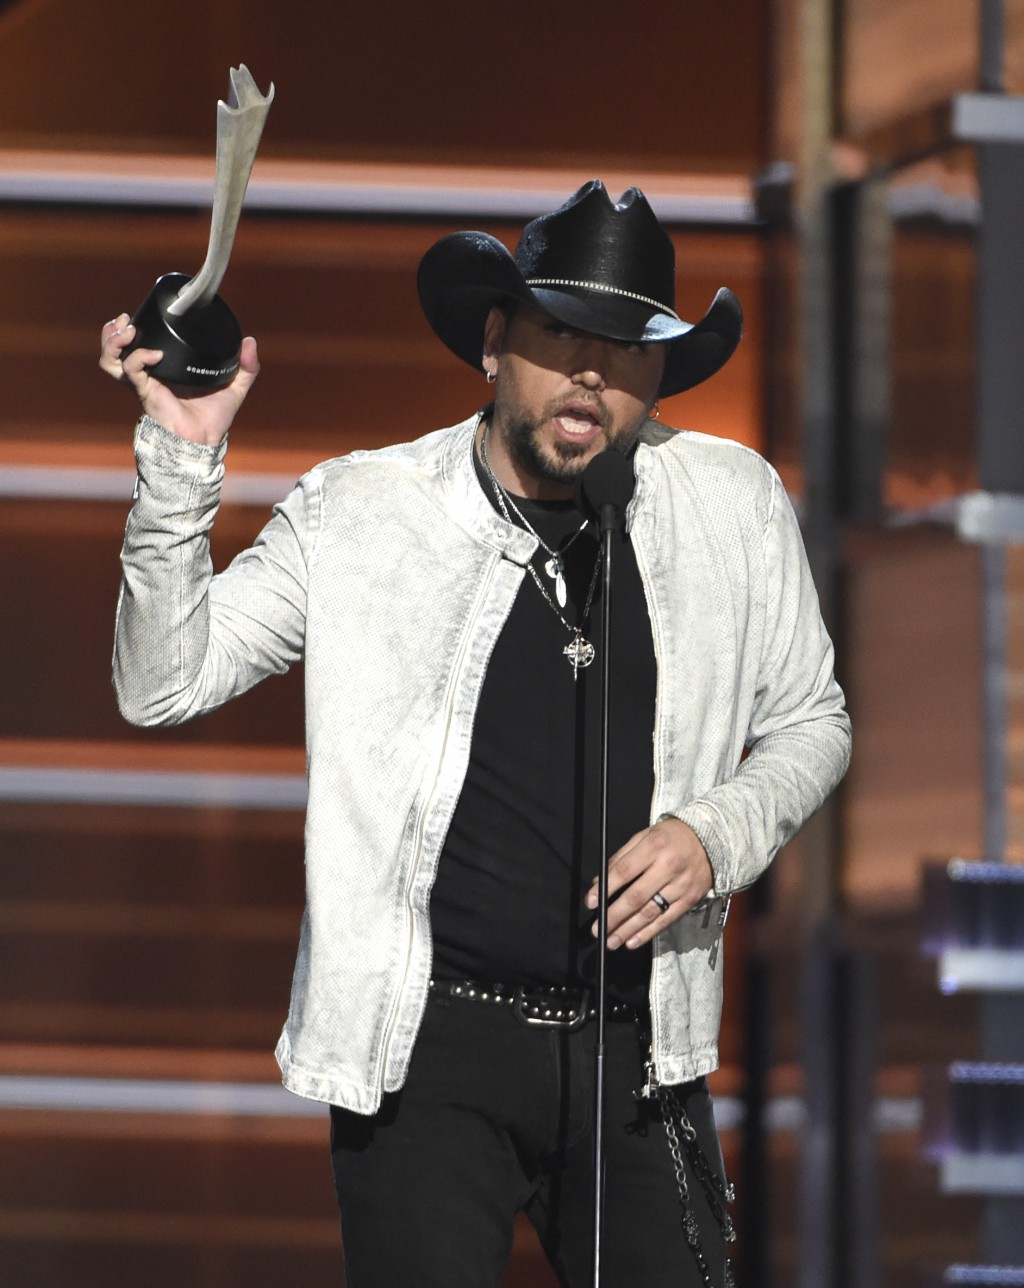 Jason Aldean accepts the award for entertainer of the year at the 53rd annual Academy of Country Music Awards at the MGM Grand Garden Arena on Sunday,